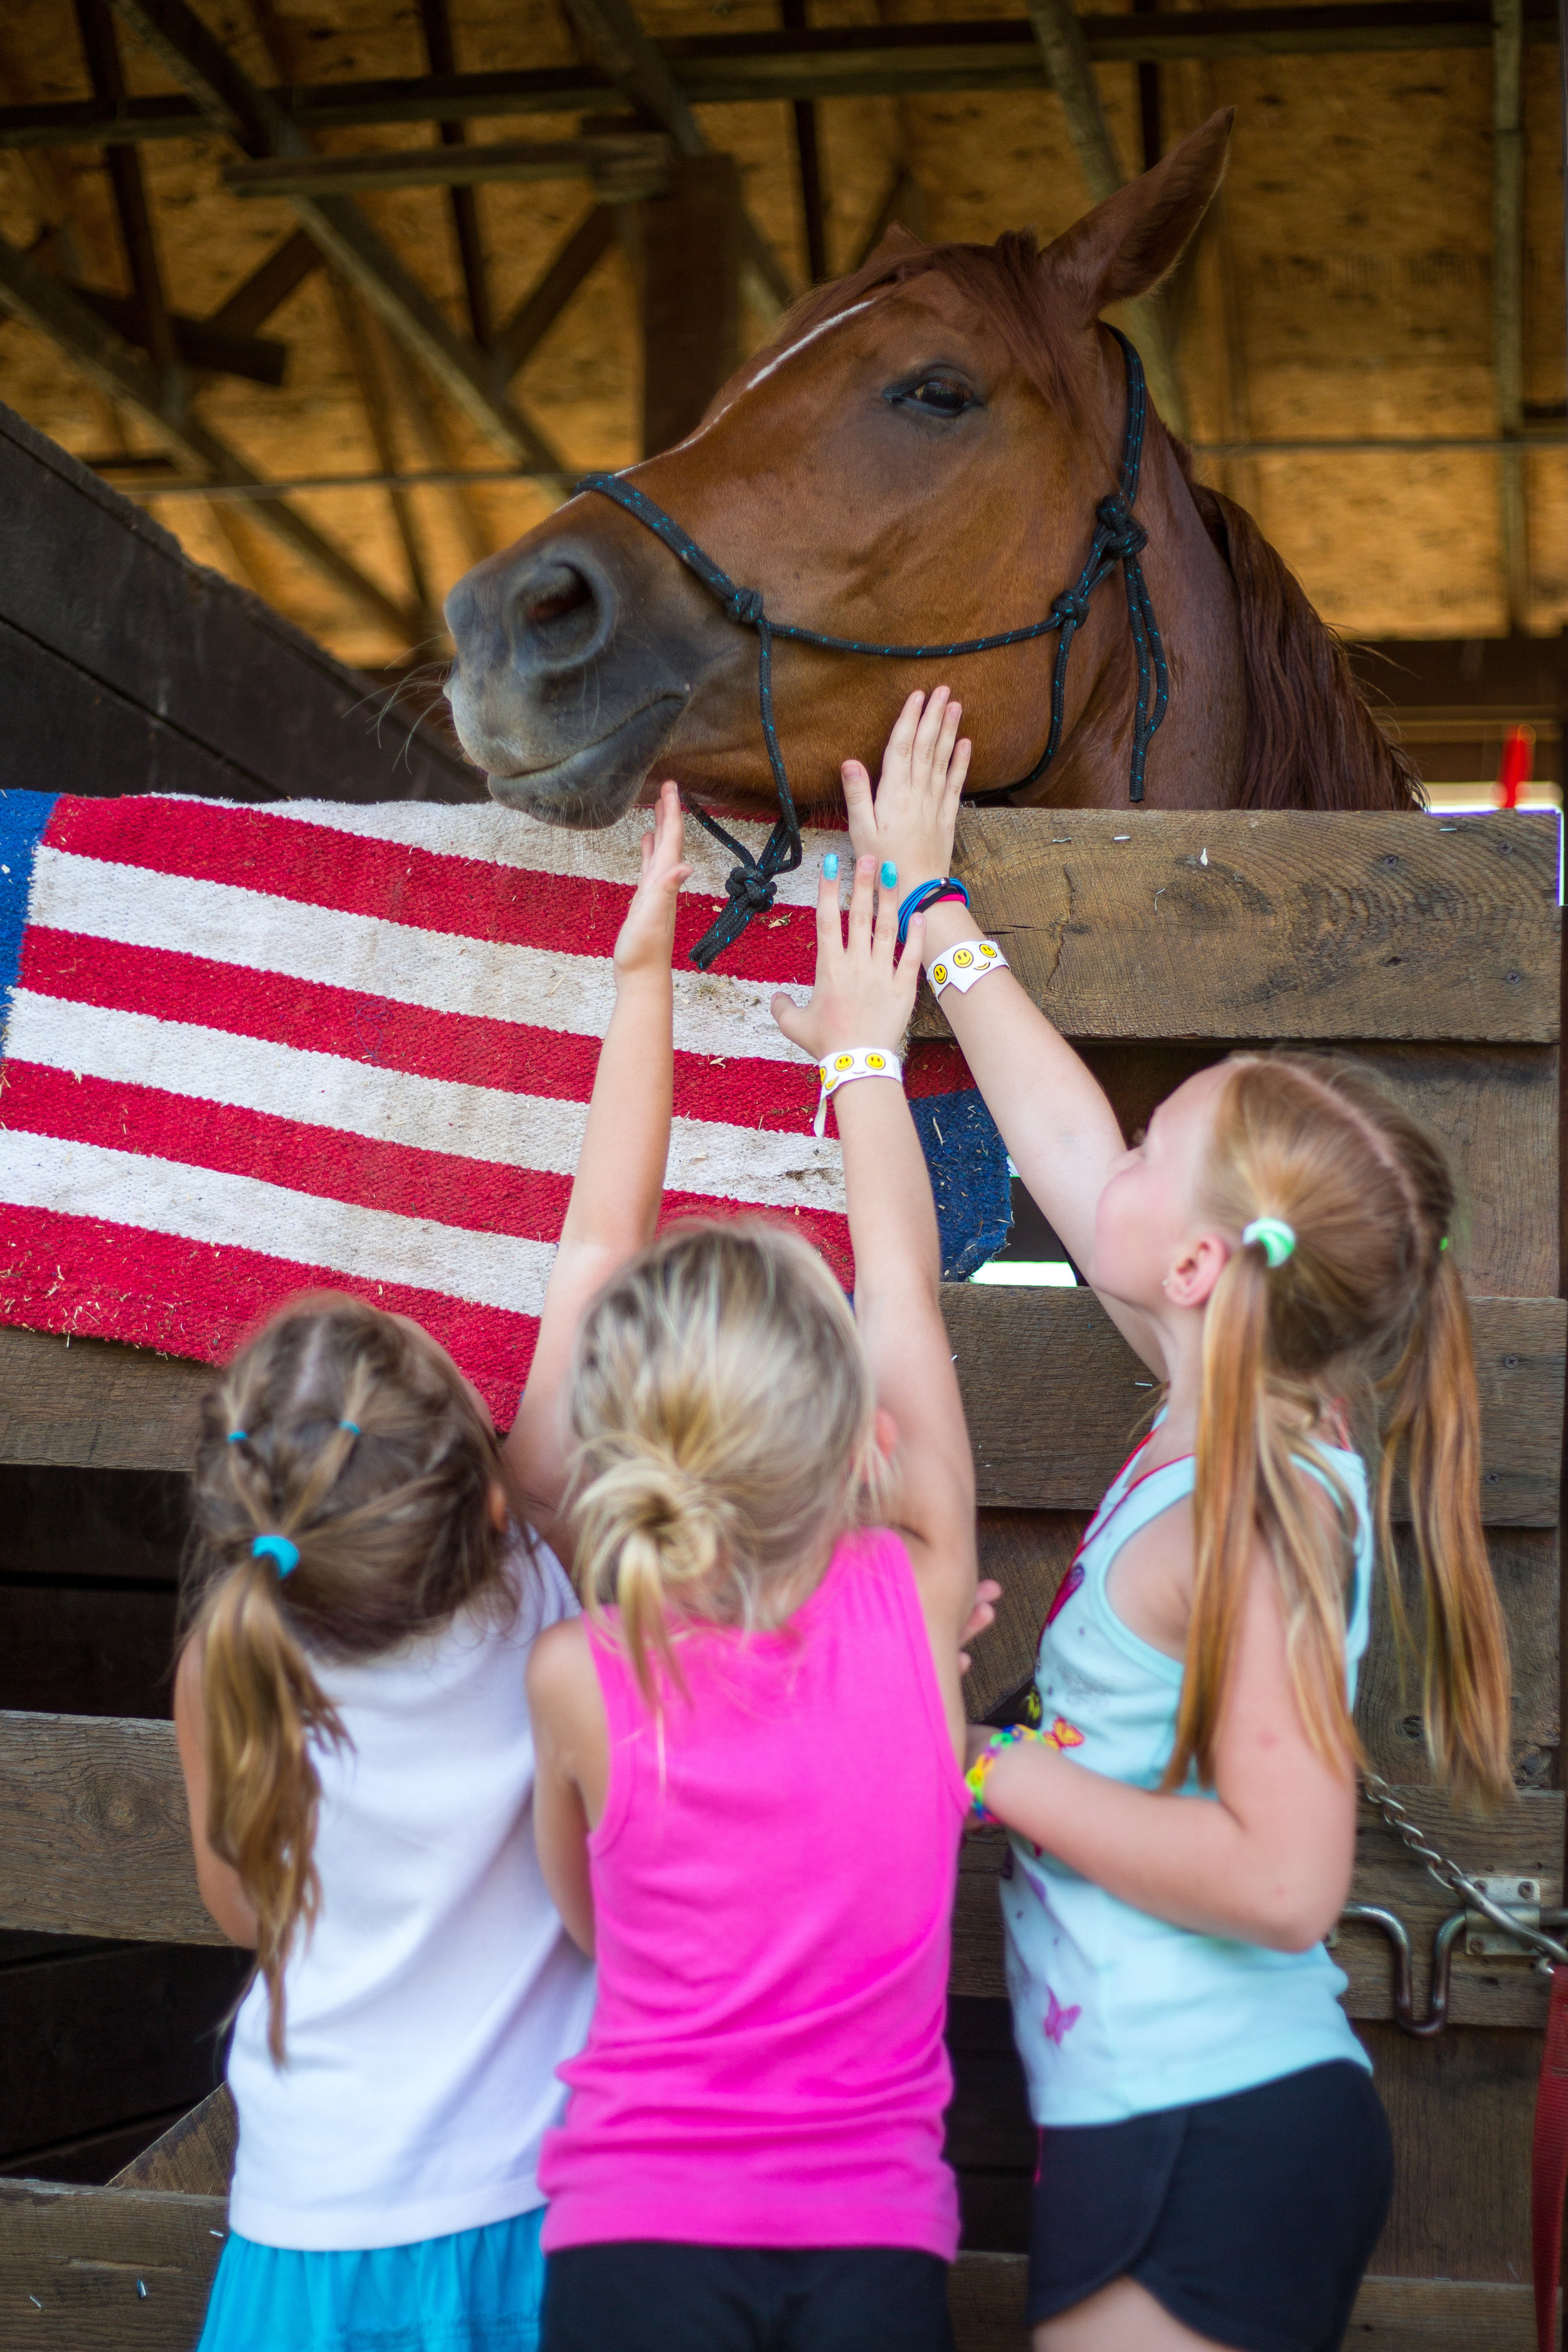 Ashlyn McDougan, left, Avah Dupain and Savannah Dupain pet a horse named Octavius at the Hookstown Fair in Hookstown on Saturday afternoon.